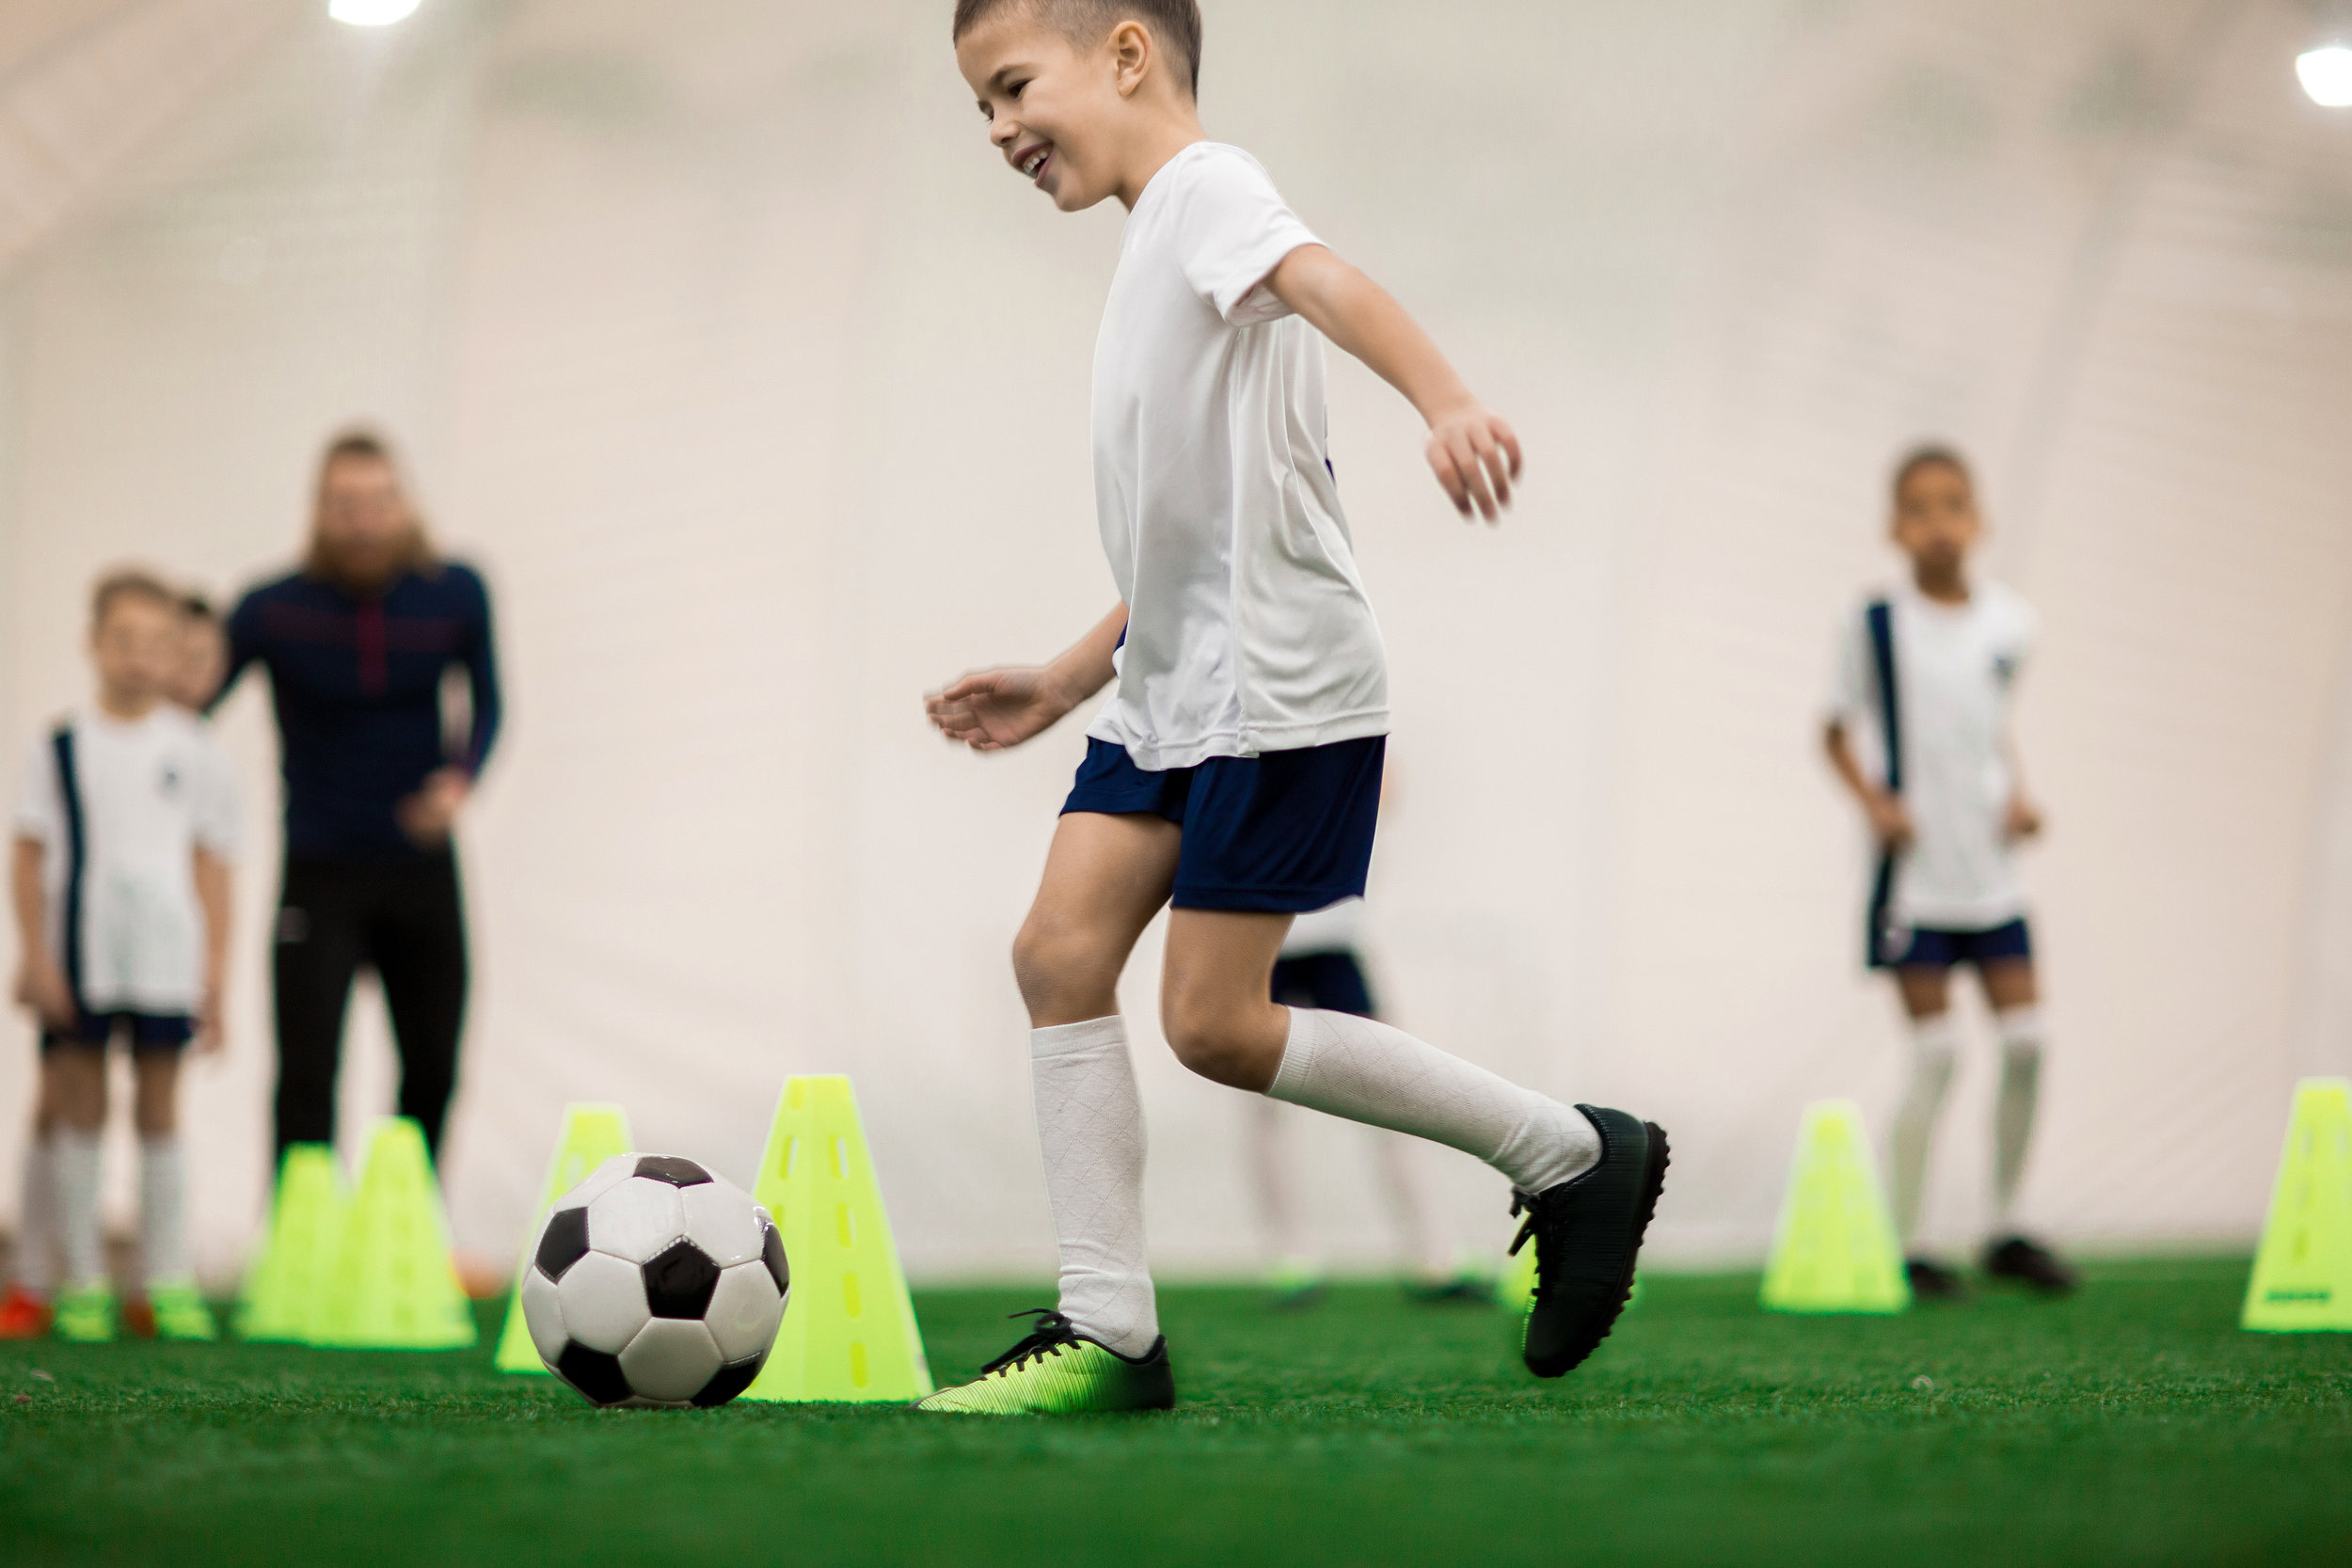 6 - 7 Years - Activities will be targeted to help players continue developing their technical skills and incorporating more passing, shooting, and basic ball control into their game